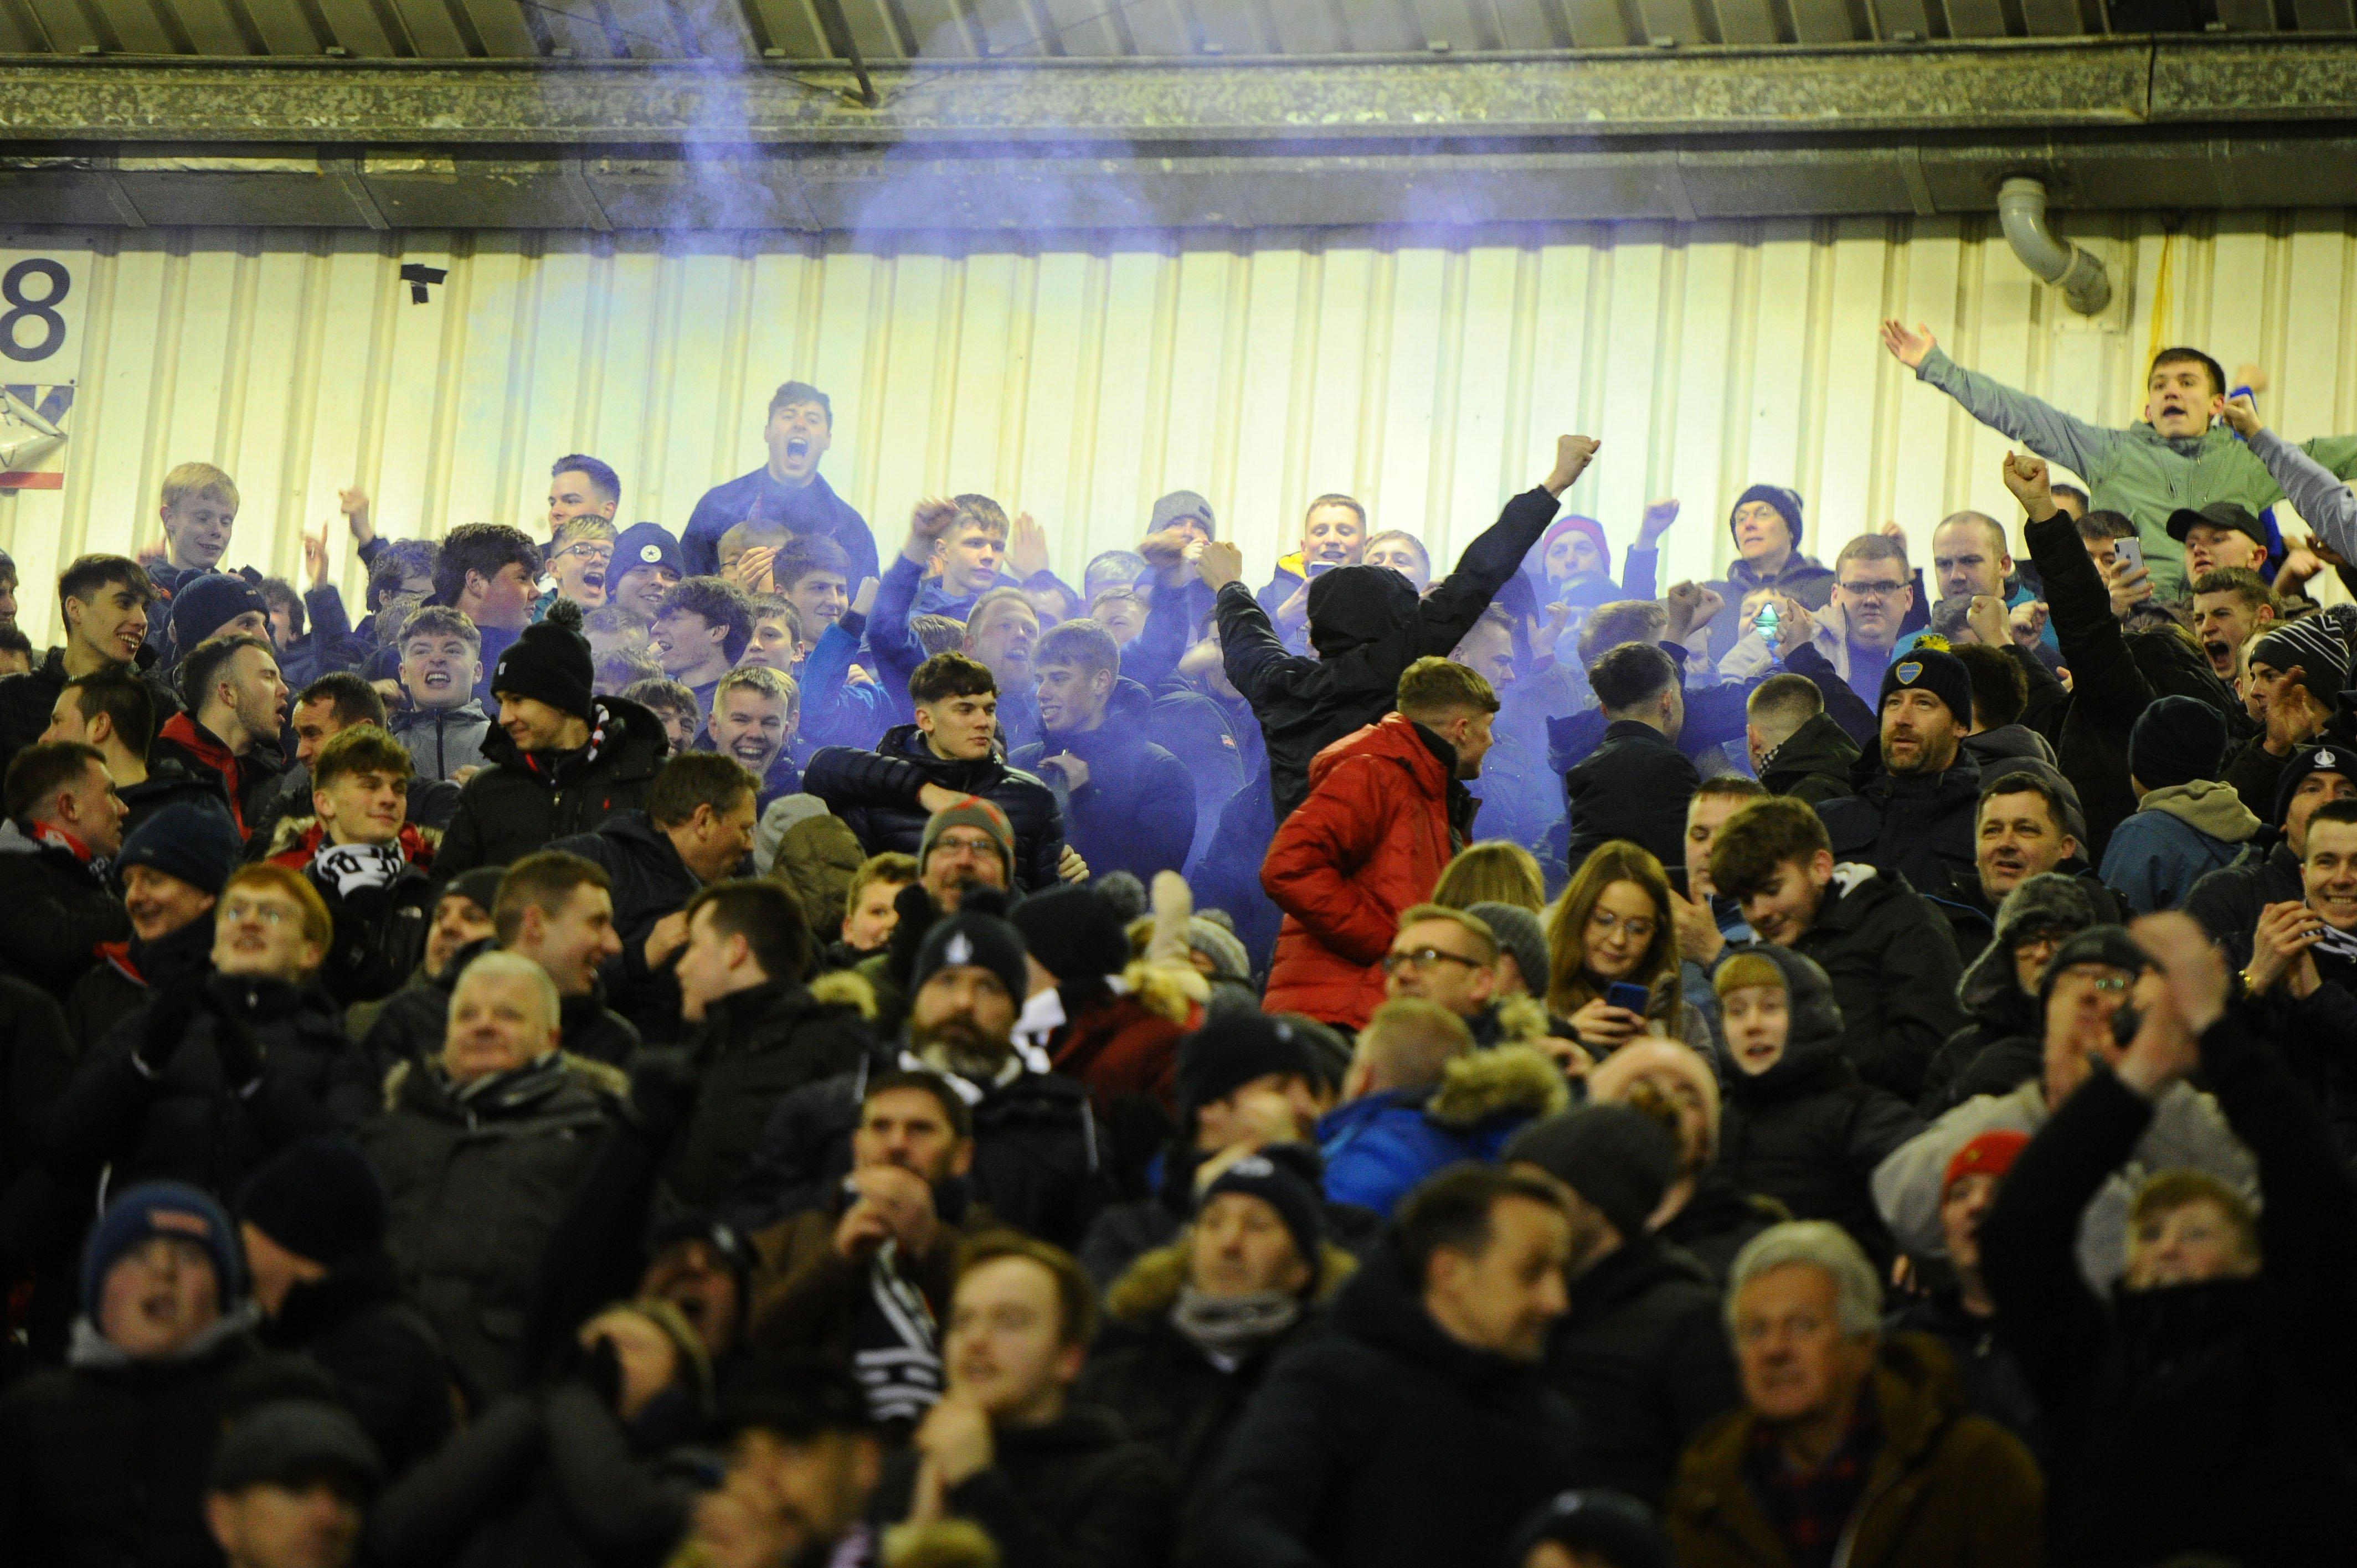 Bairns shown to have top level support – despite Falkirk's decade out of SPFL Premiership